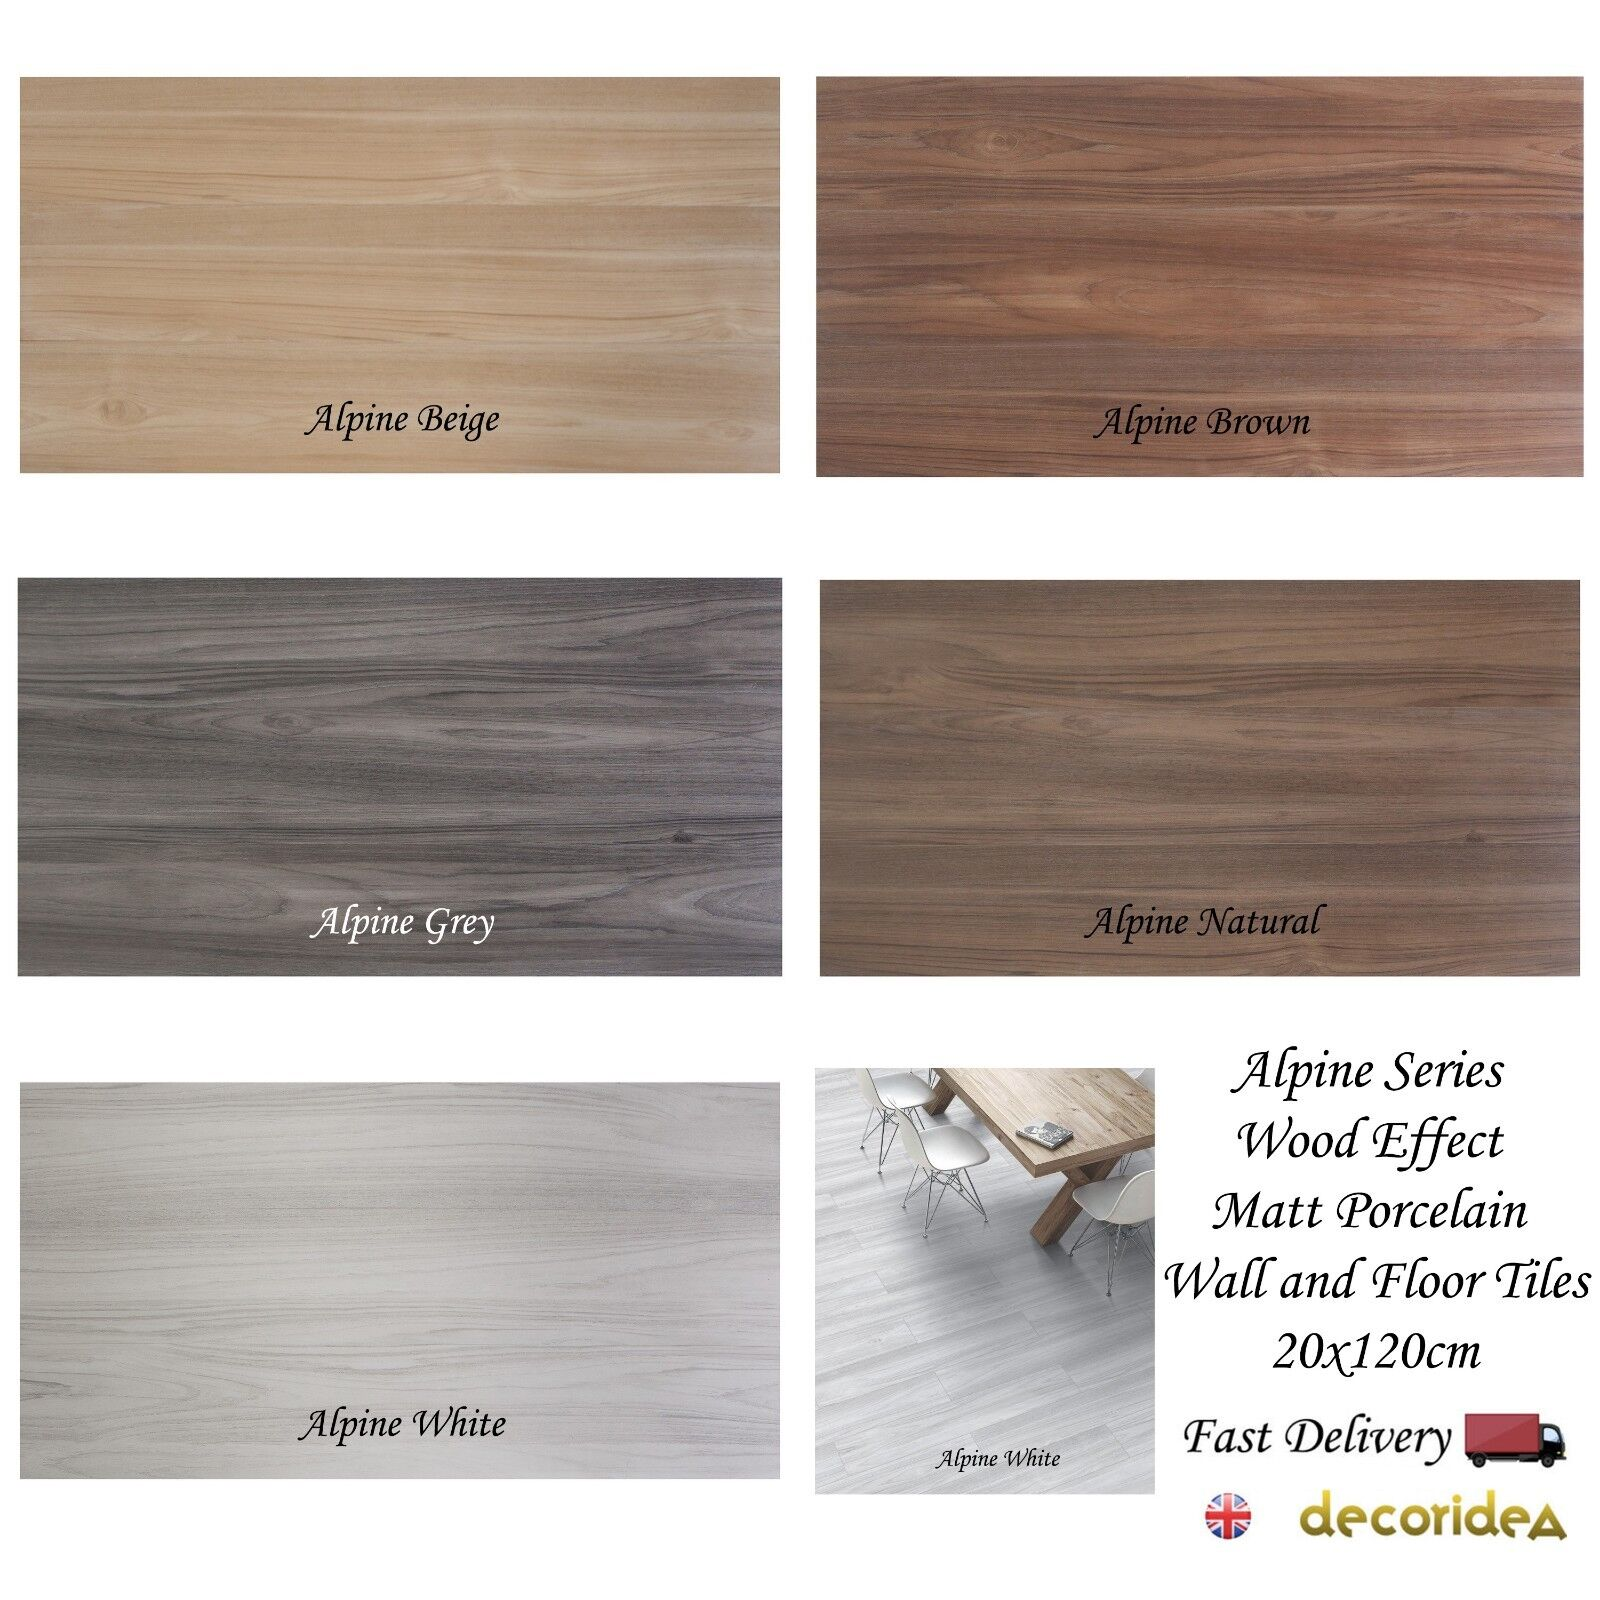 Alpine Series Wood Effect Matt Porcelain Wall & Floor Tiles 20x120cm  sqm